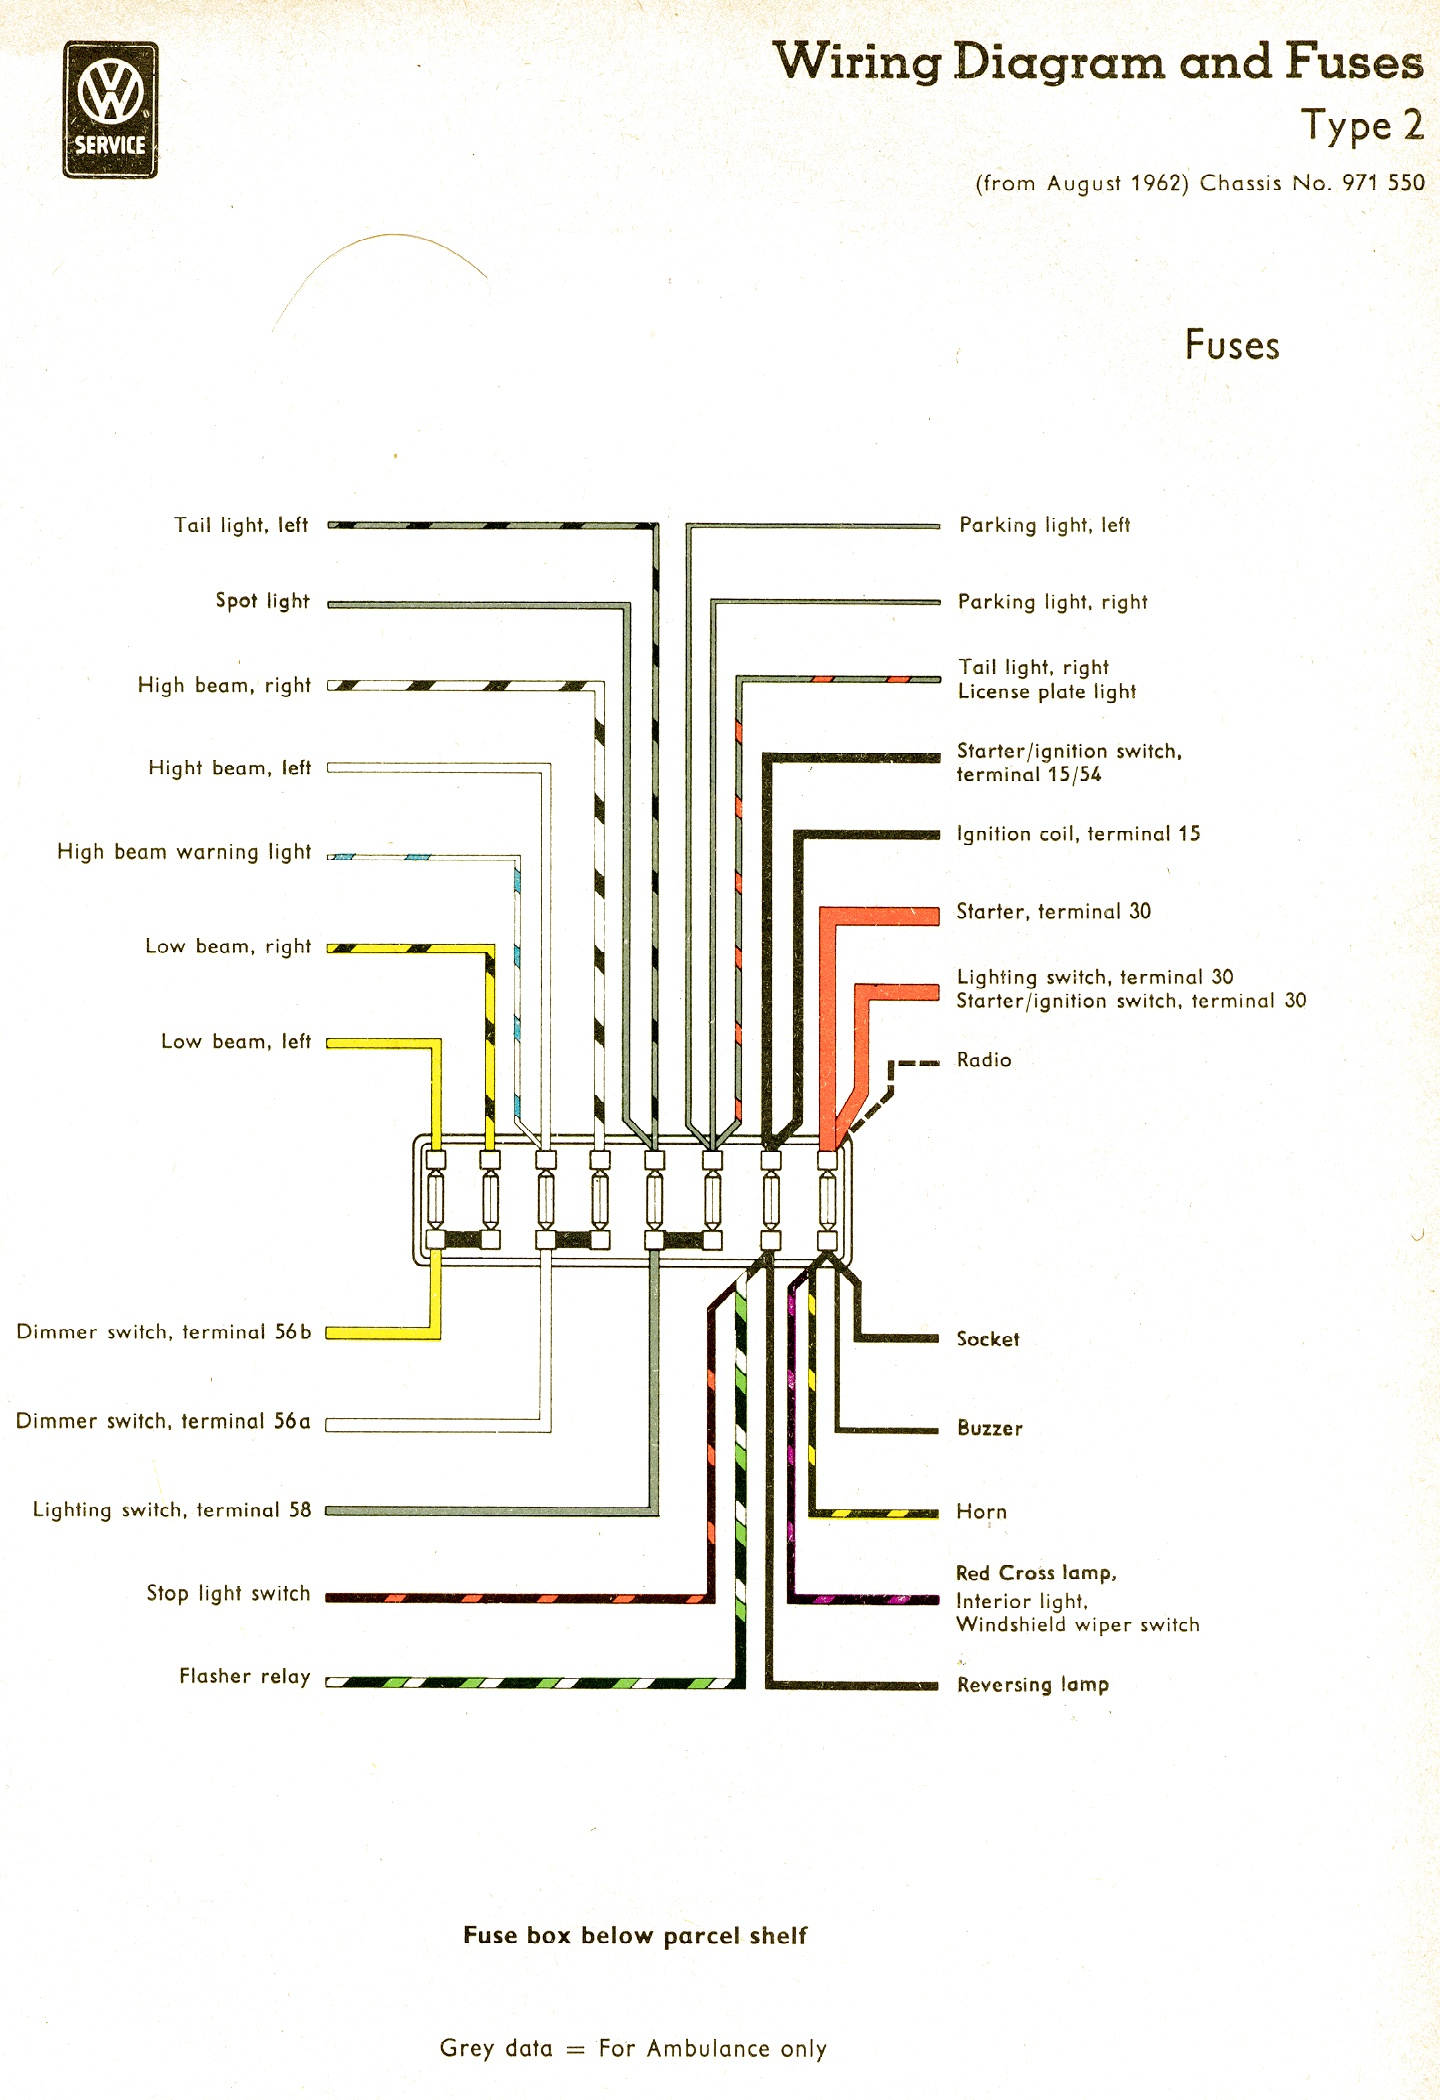 bus 62 fuse vw wiring diagrams 1965 vw beetle wiring diagram at mifinder.co